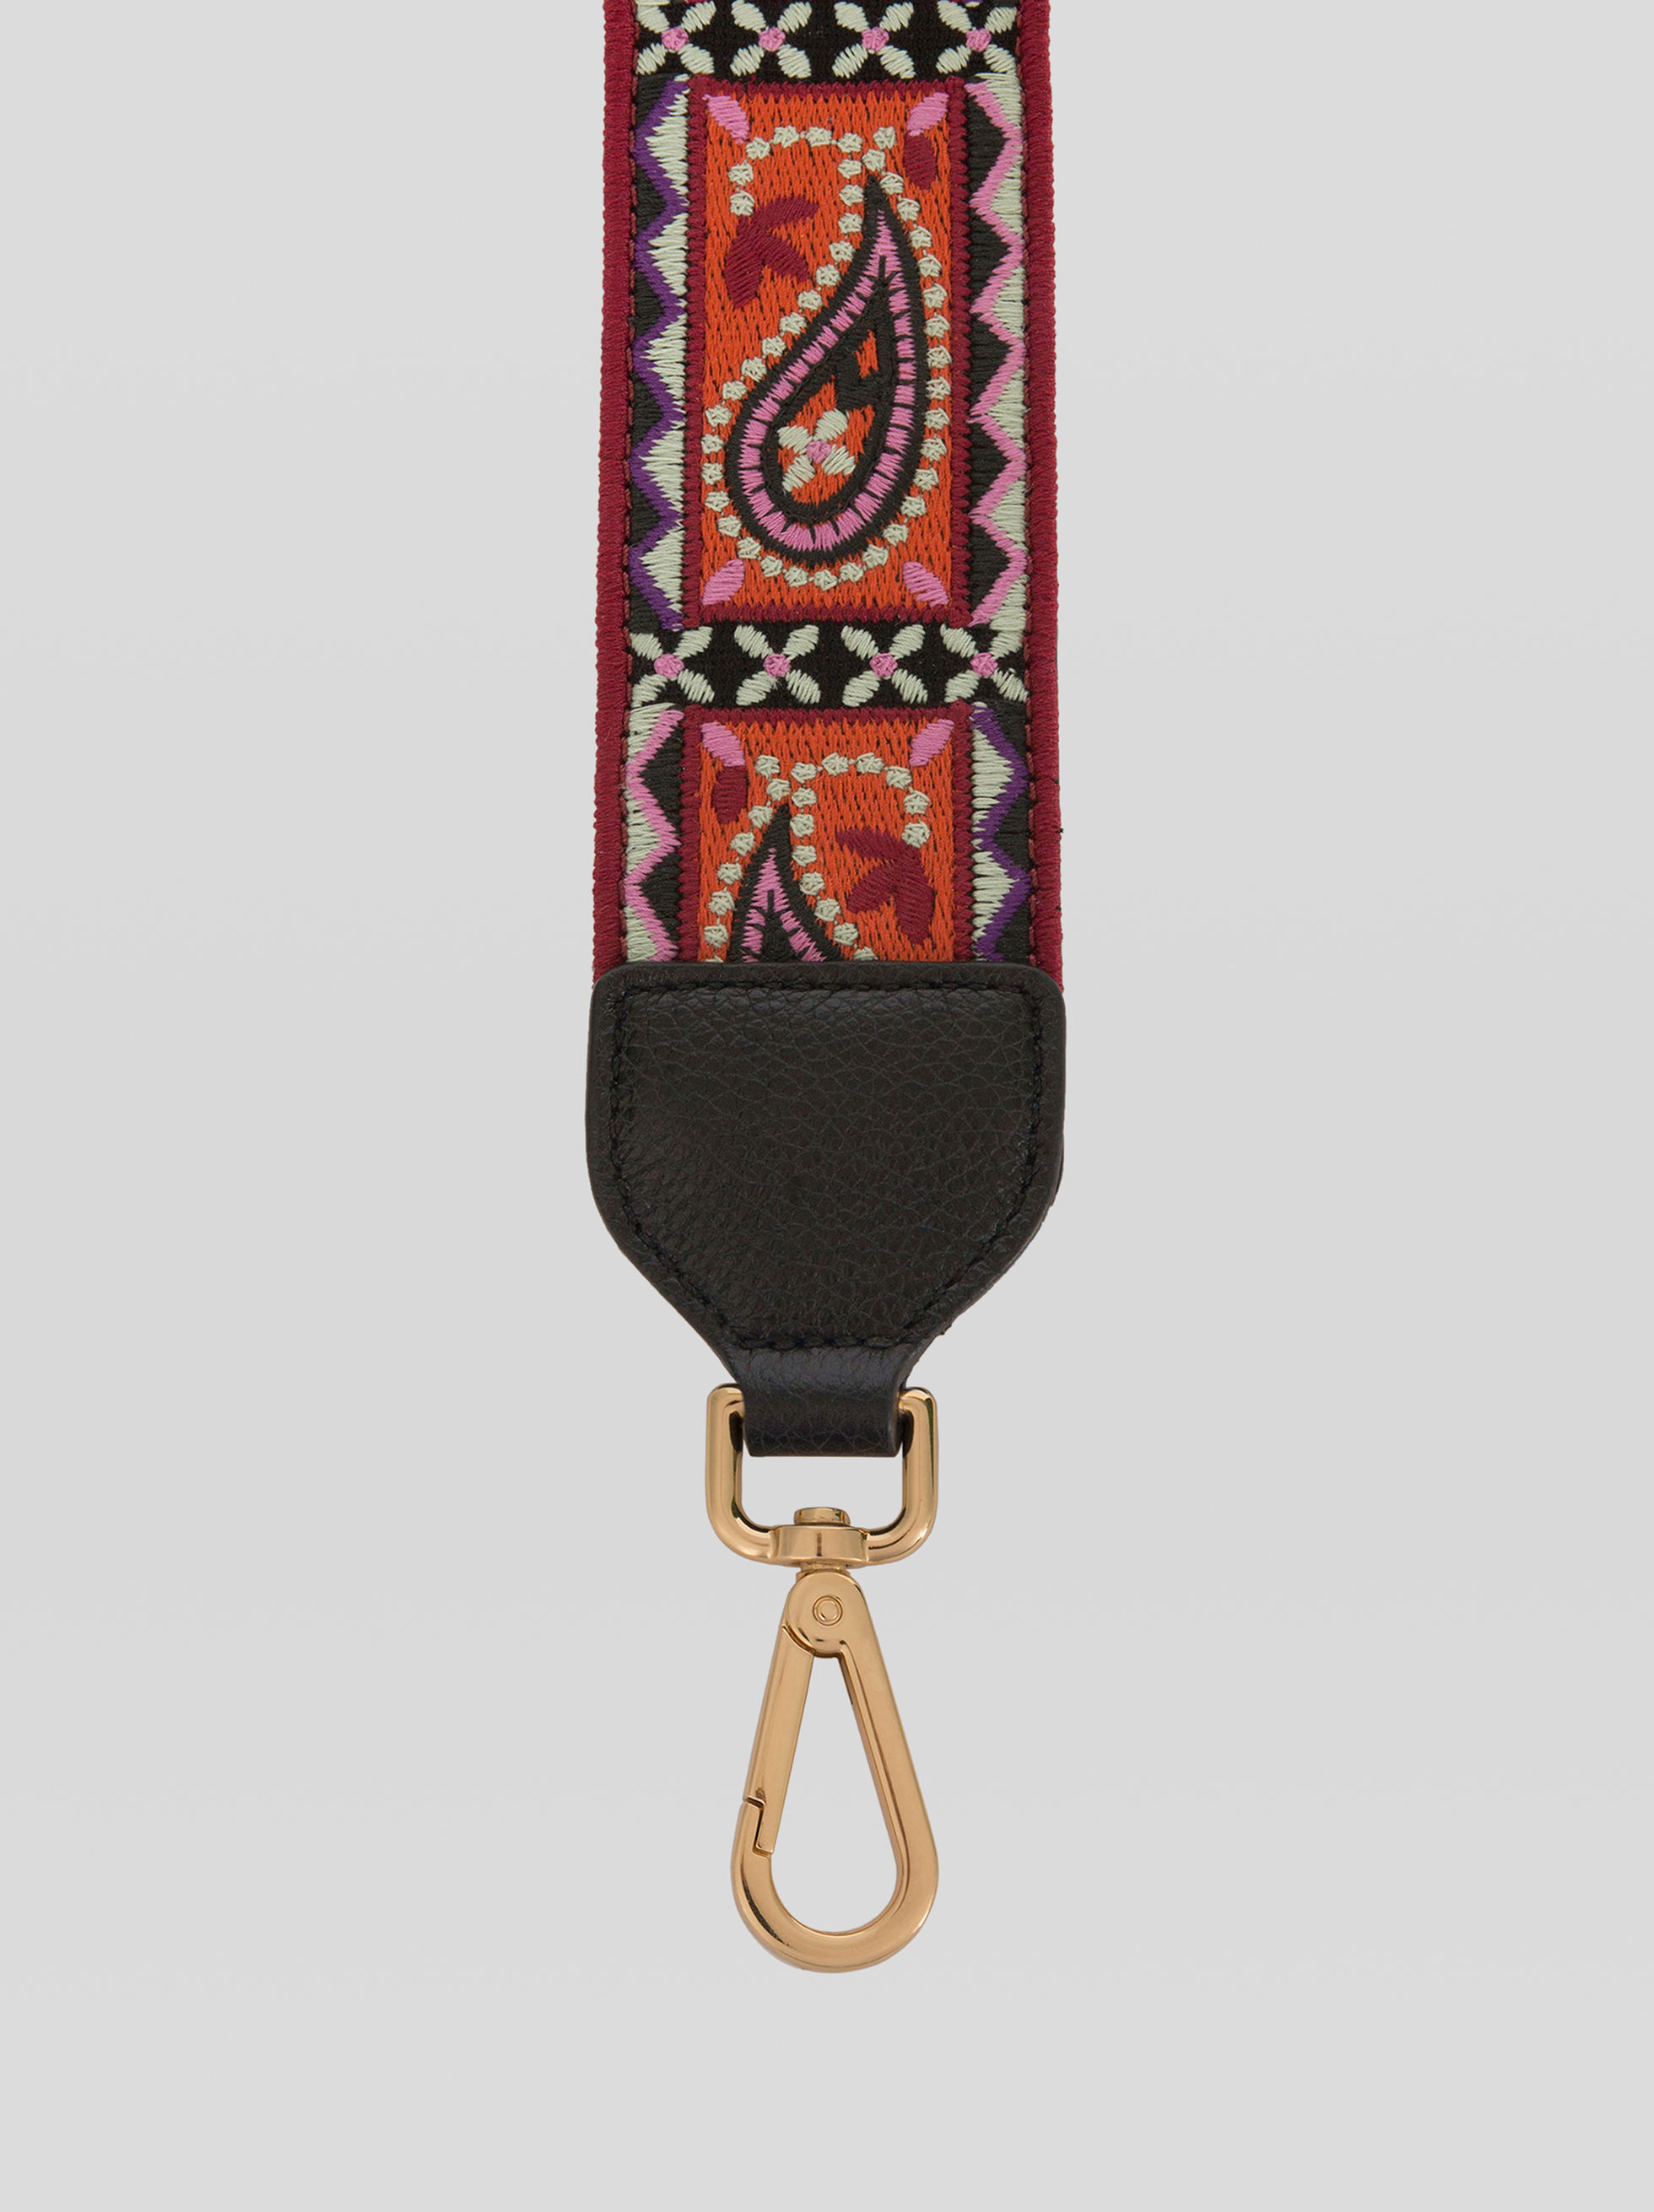 EMBROIDERED RAINBOW SHOULDER STRAP